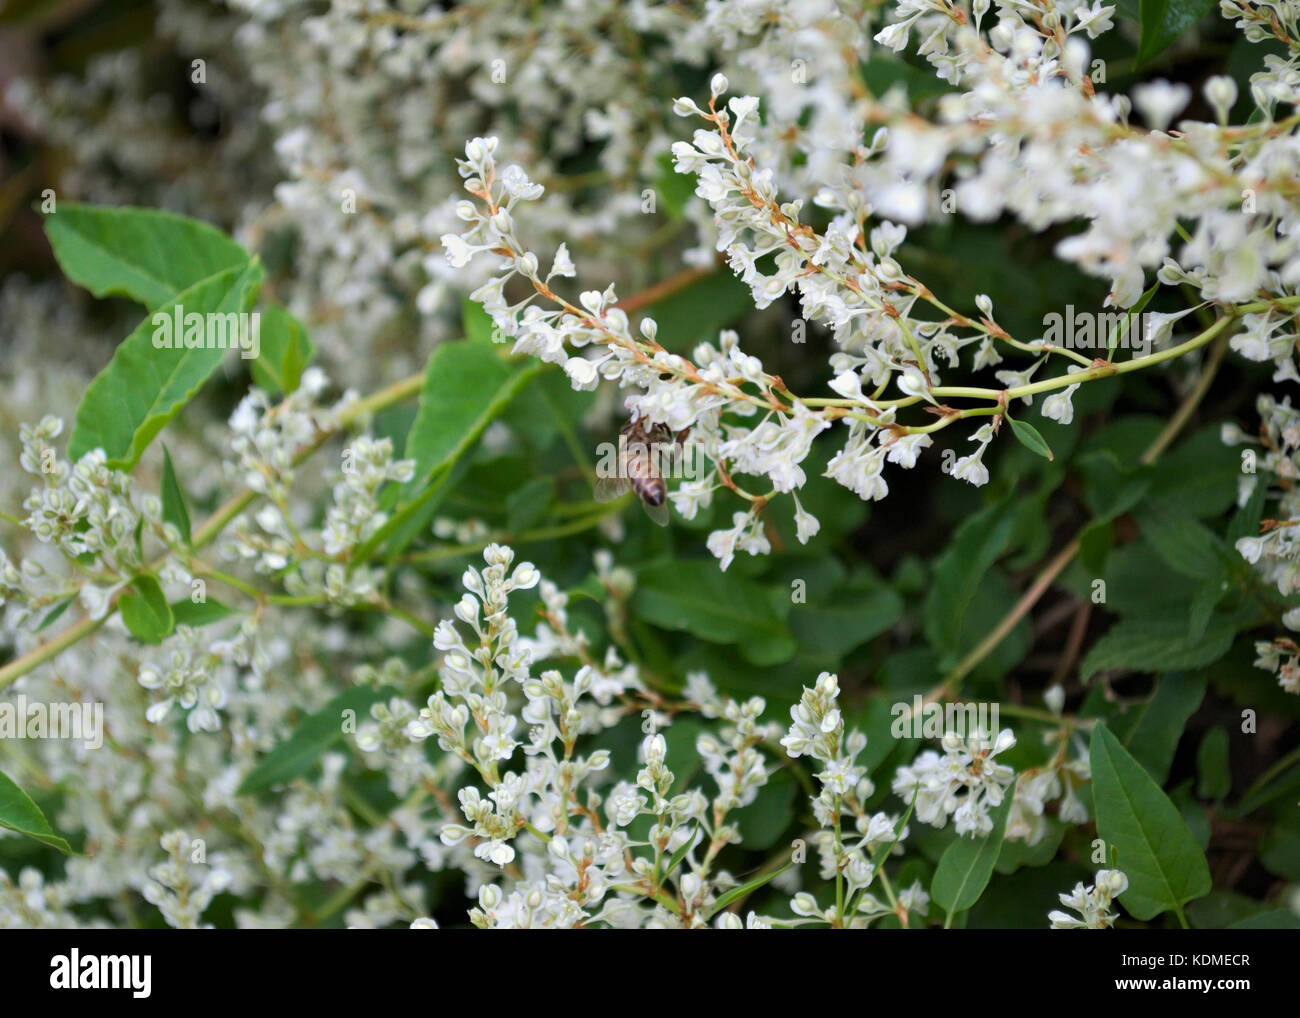 Pianta Rampicante Con Fiori Bianchi.Bee Working On Climbing Plant White Flowers Stock Photo 163334215